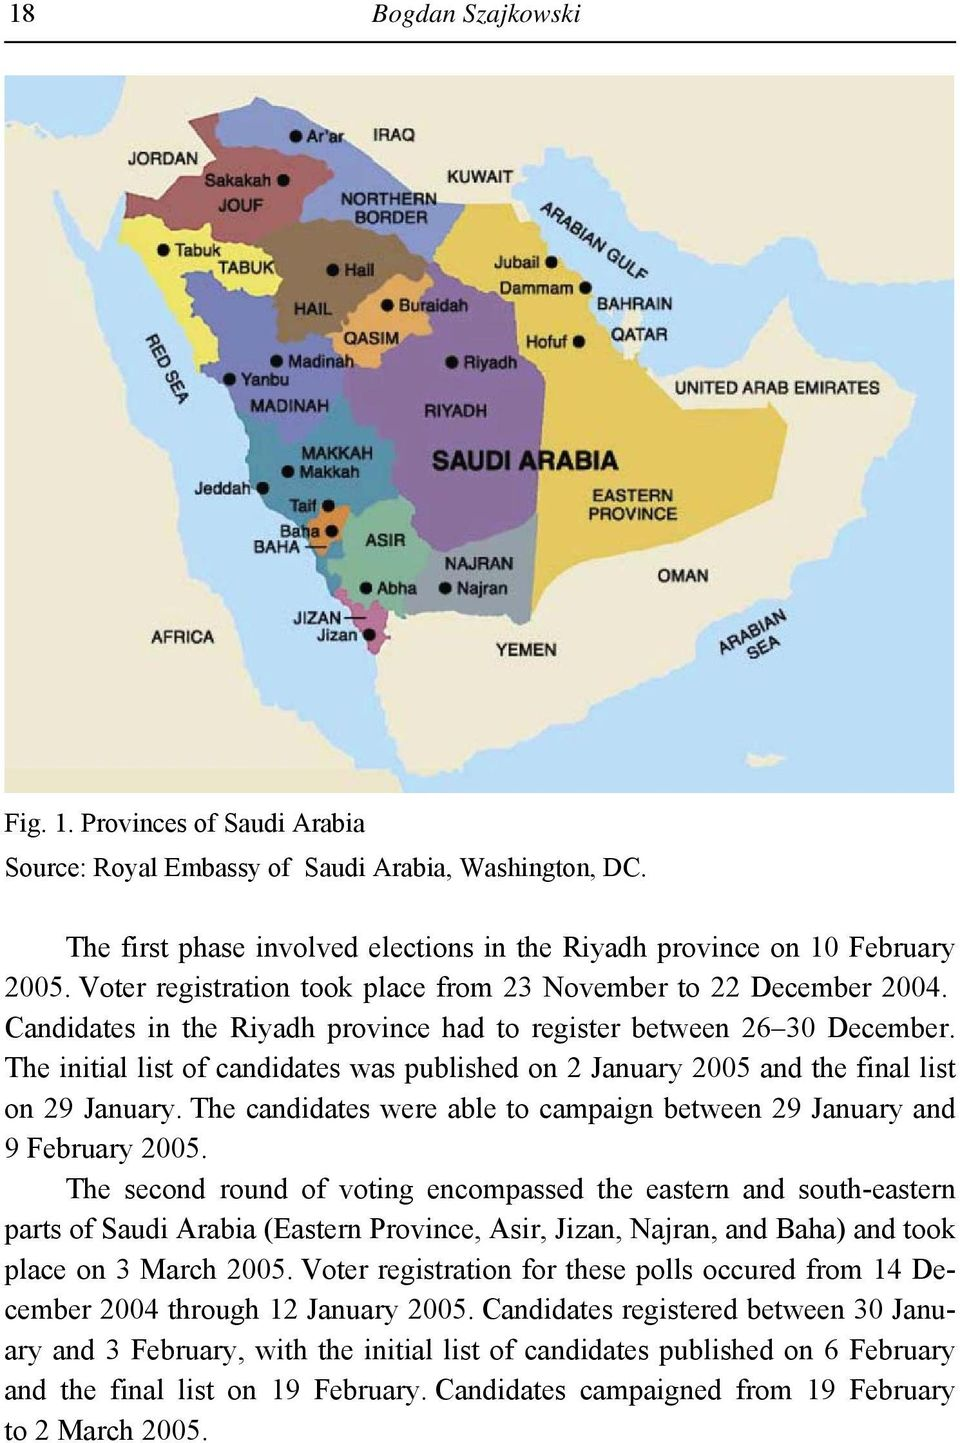 The initial list of candidates was published on 2 January 2005 and the final list on 29 January. The candidates were able to campaign between 29 January and 9 February 2005.